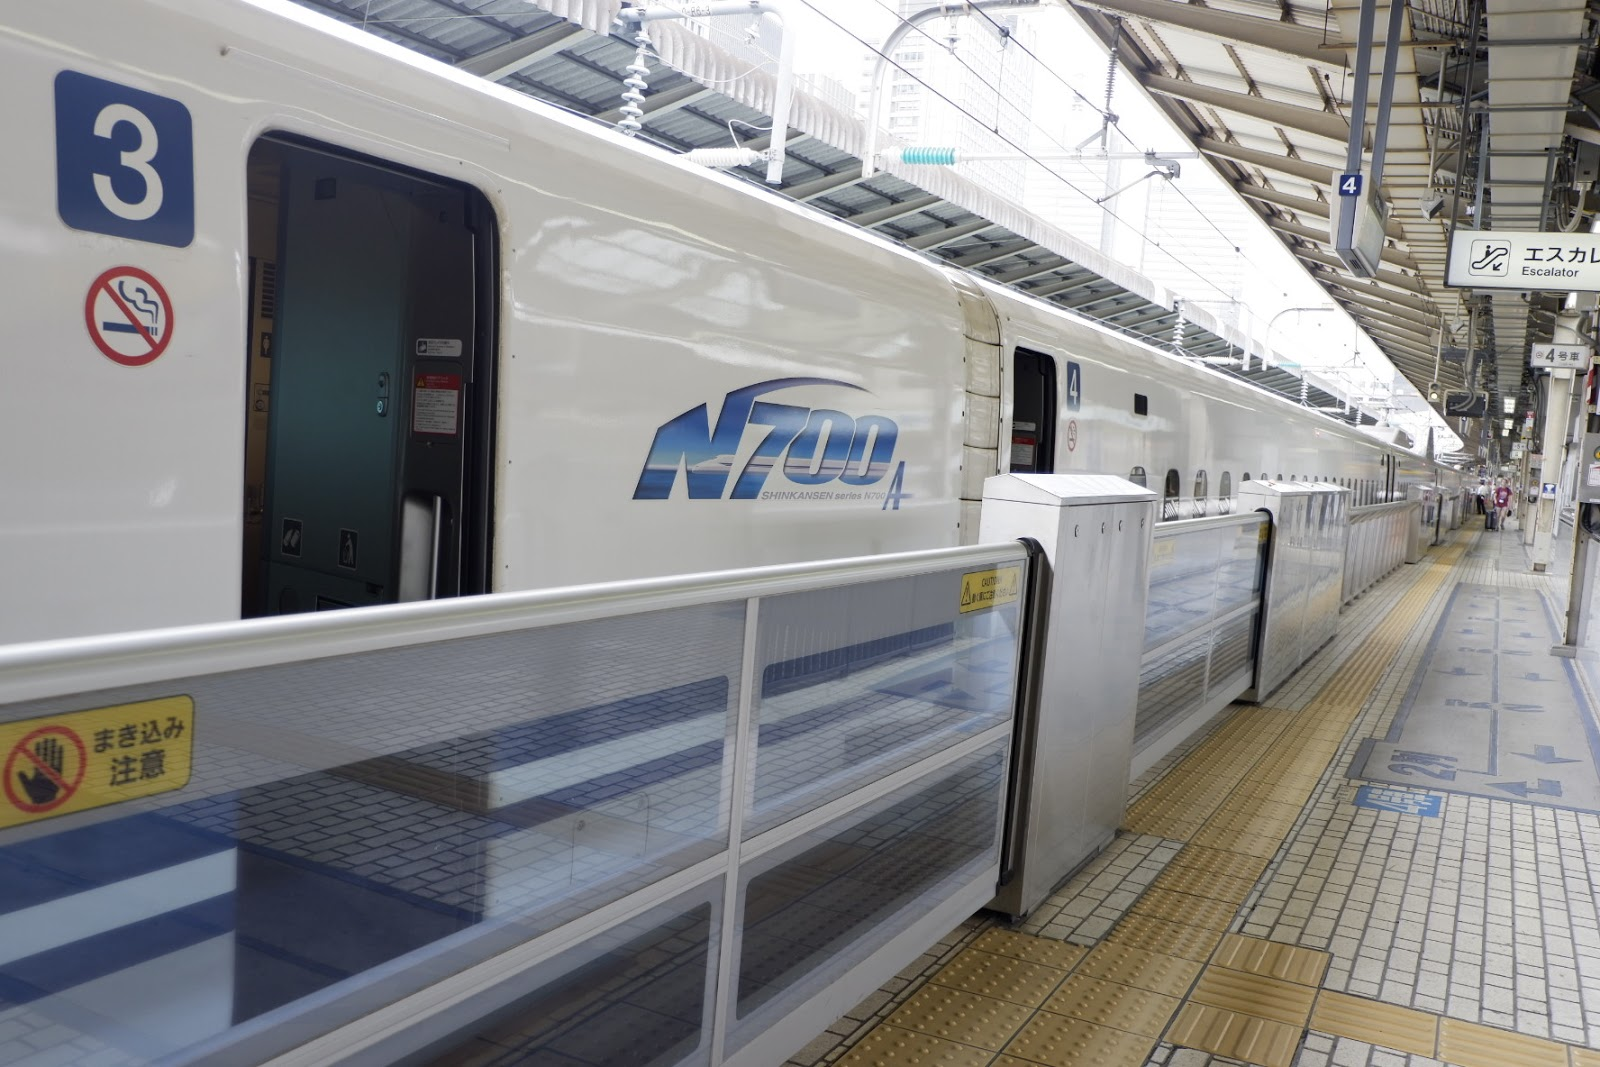 Blognya Ima 2017 Japan Rail Pass Jr Train Shinkansen 7 Hari Anak Ordinary Di Dalam Stasiun Shin Osaka